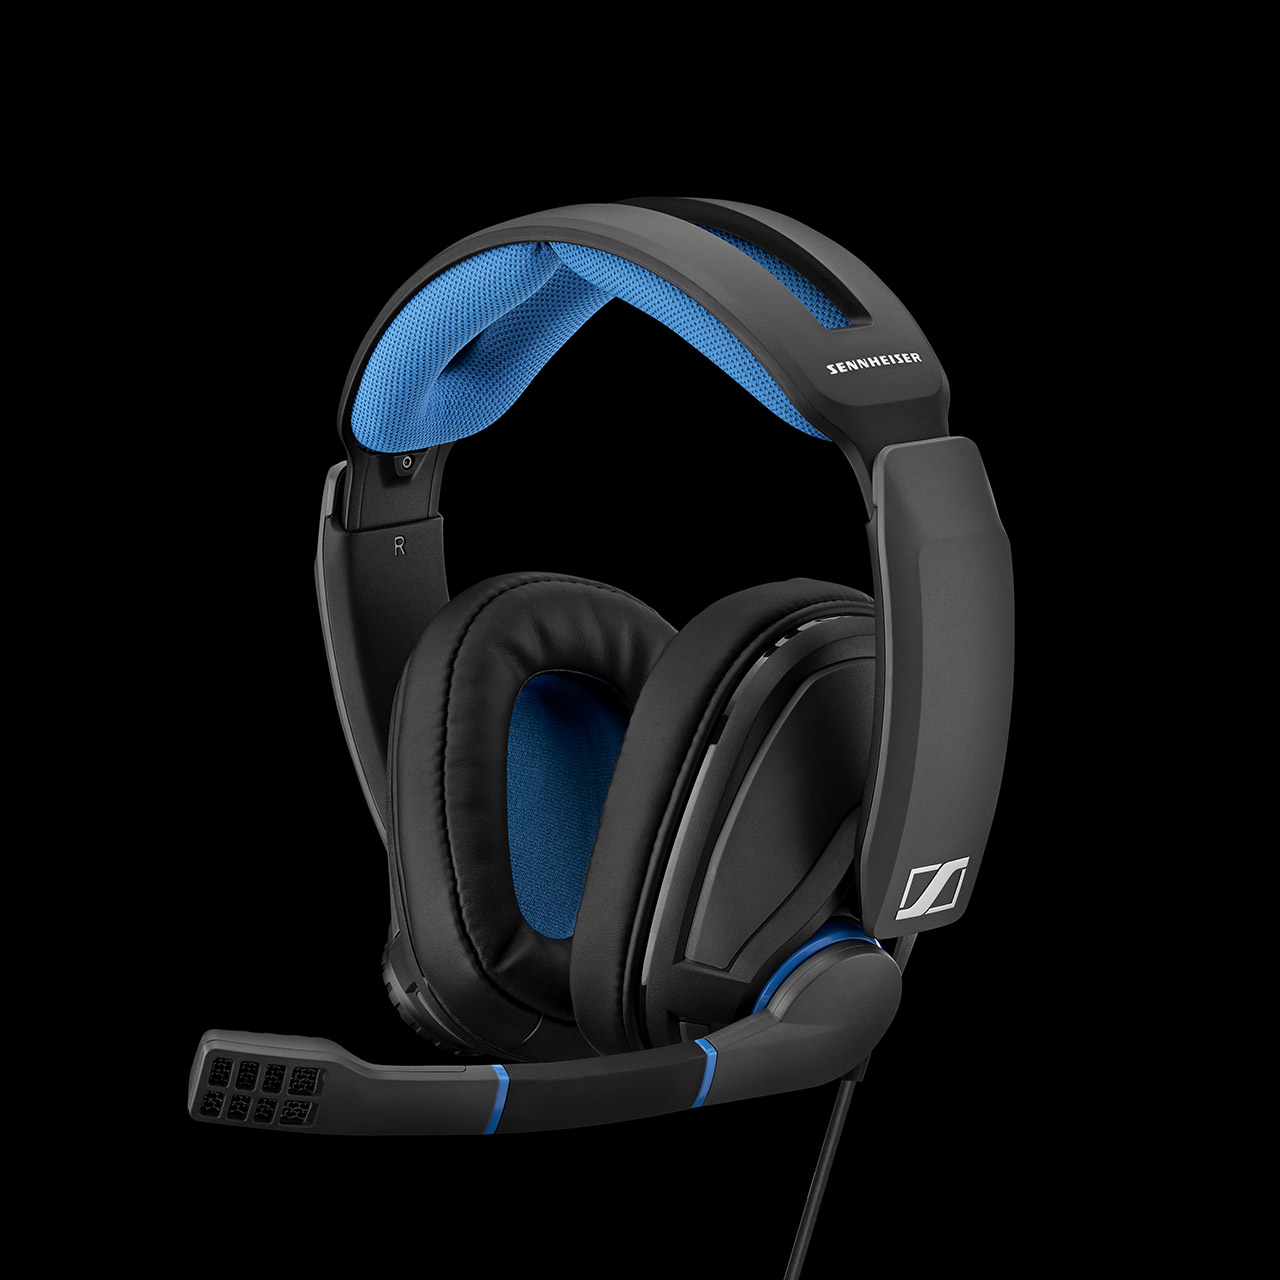 Sennheiser GSP 300 Gaming Headset Review